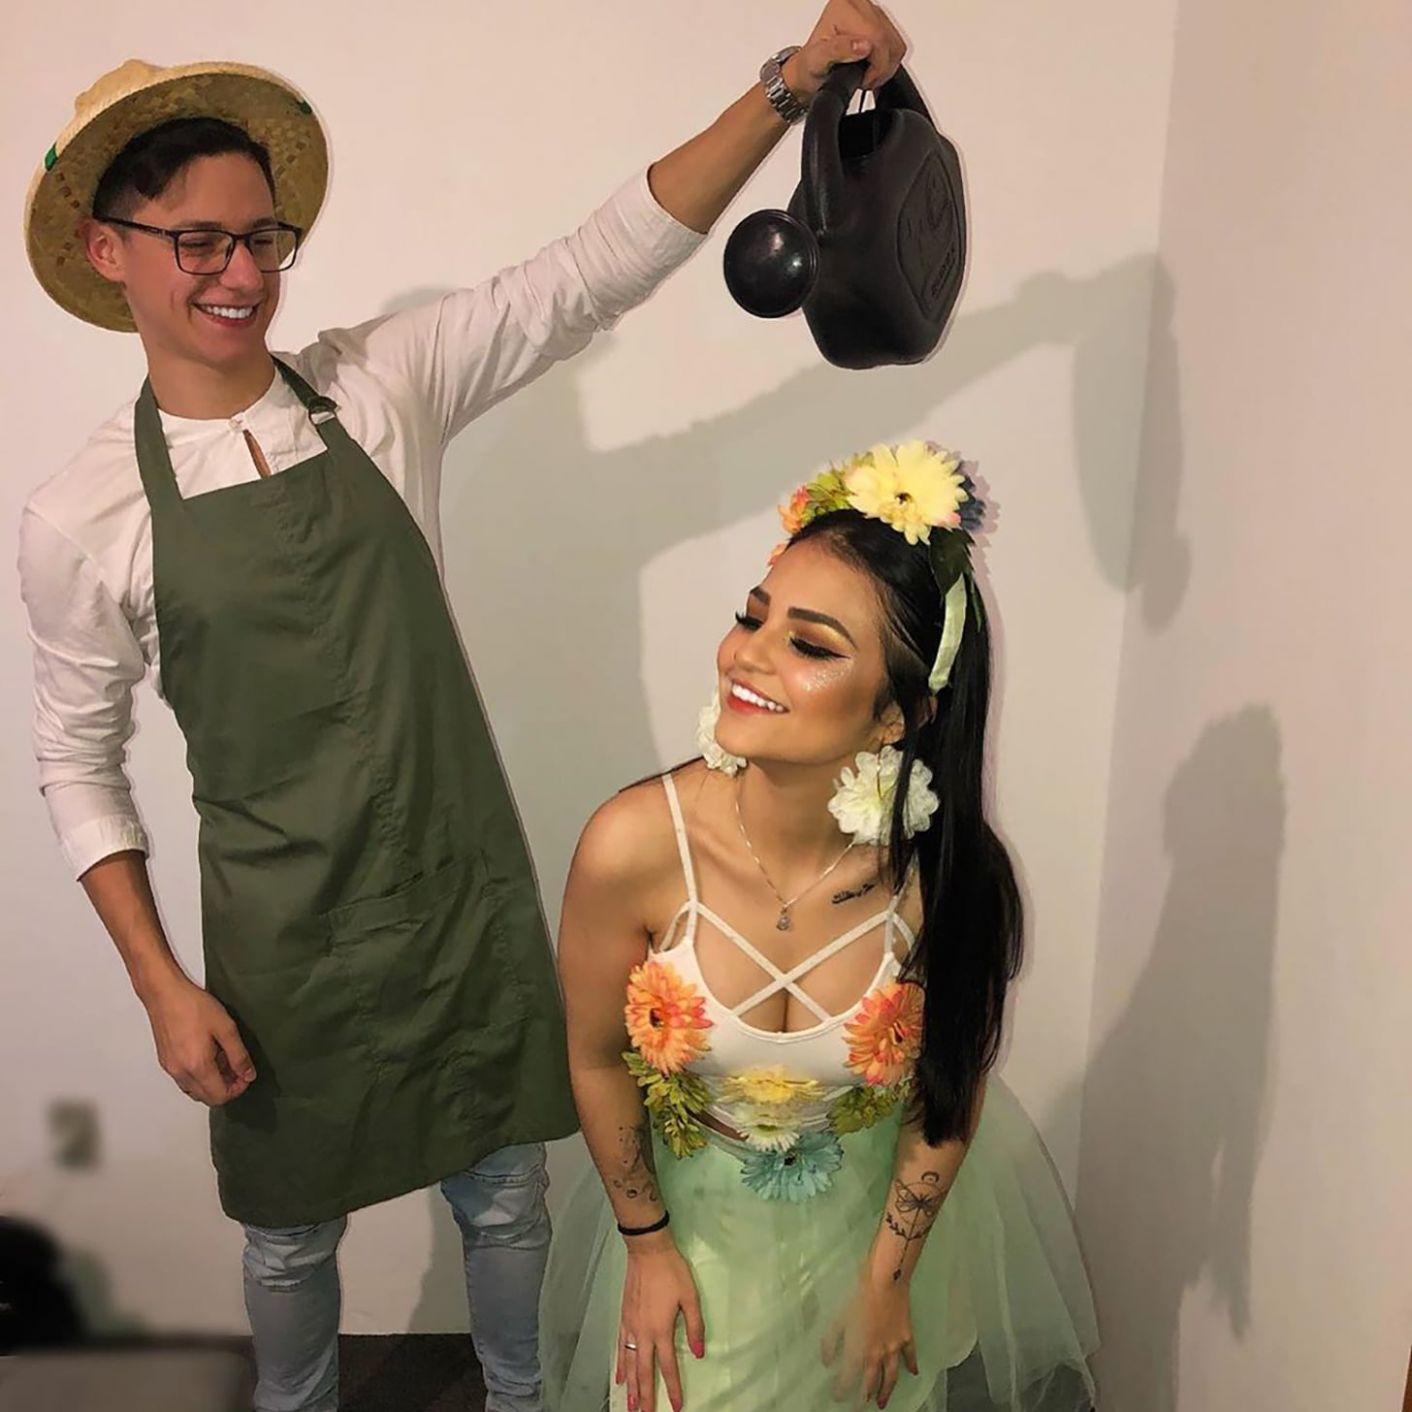 Creative Couples Costume Ideas | POPSUGAR Love & Sex - halloween ideas unique